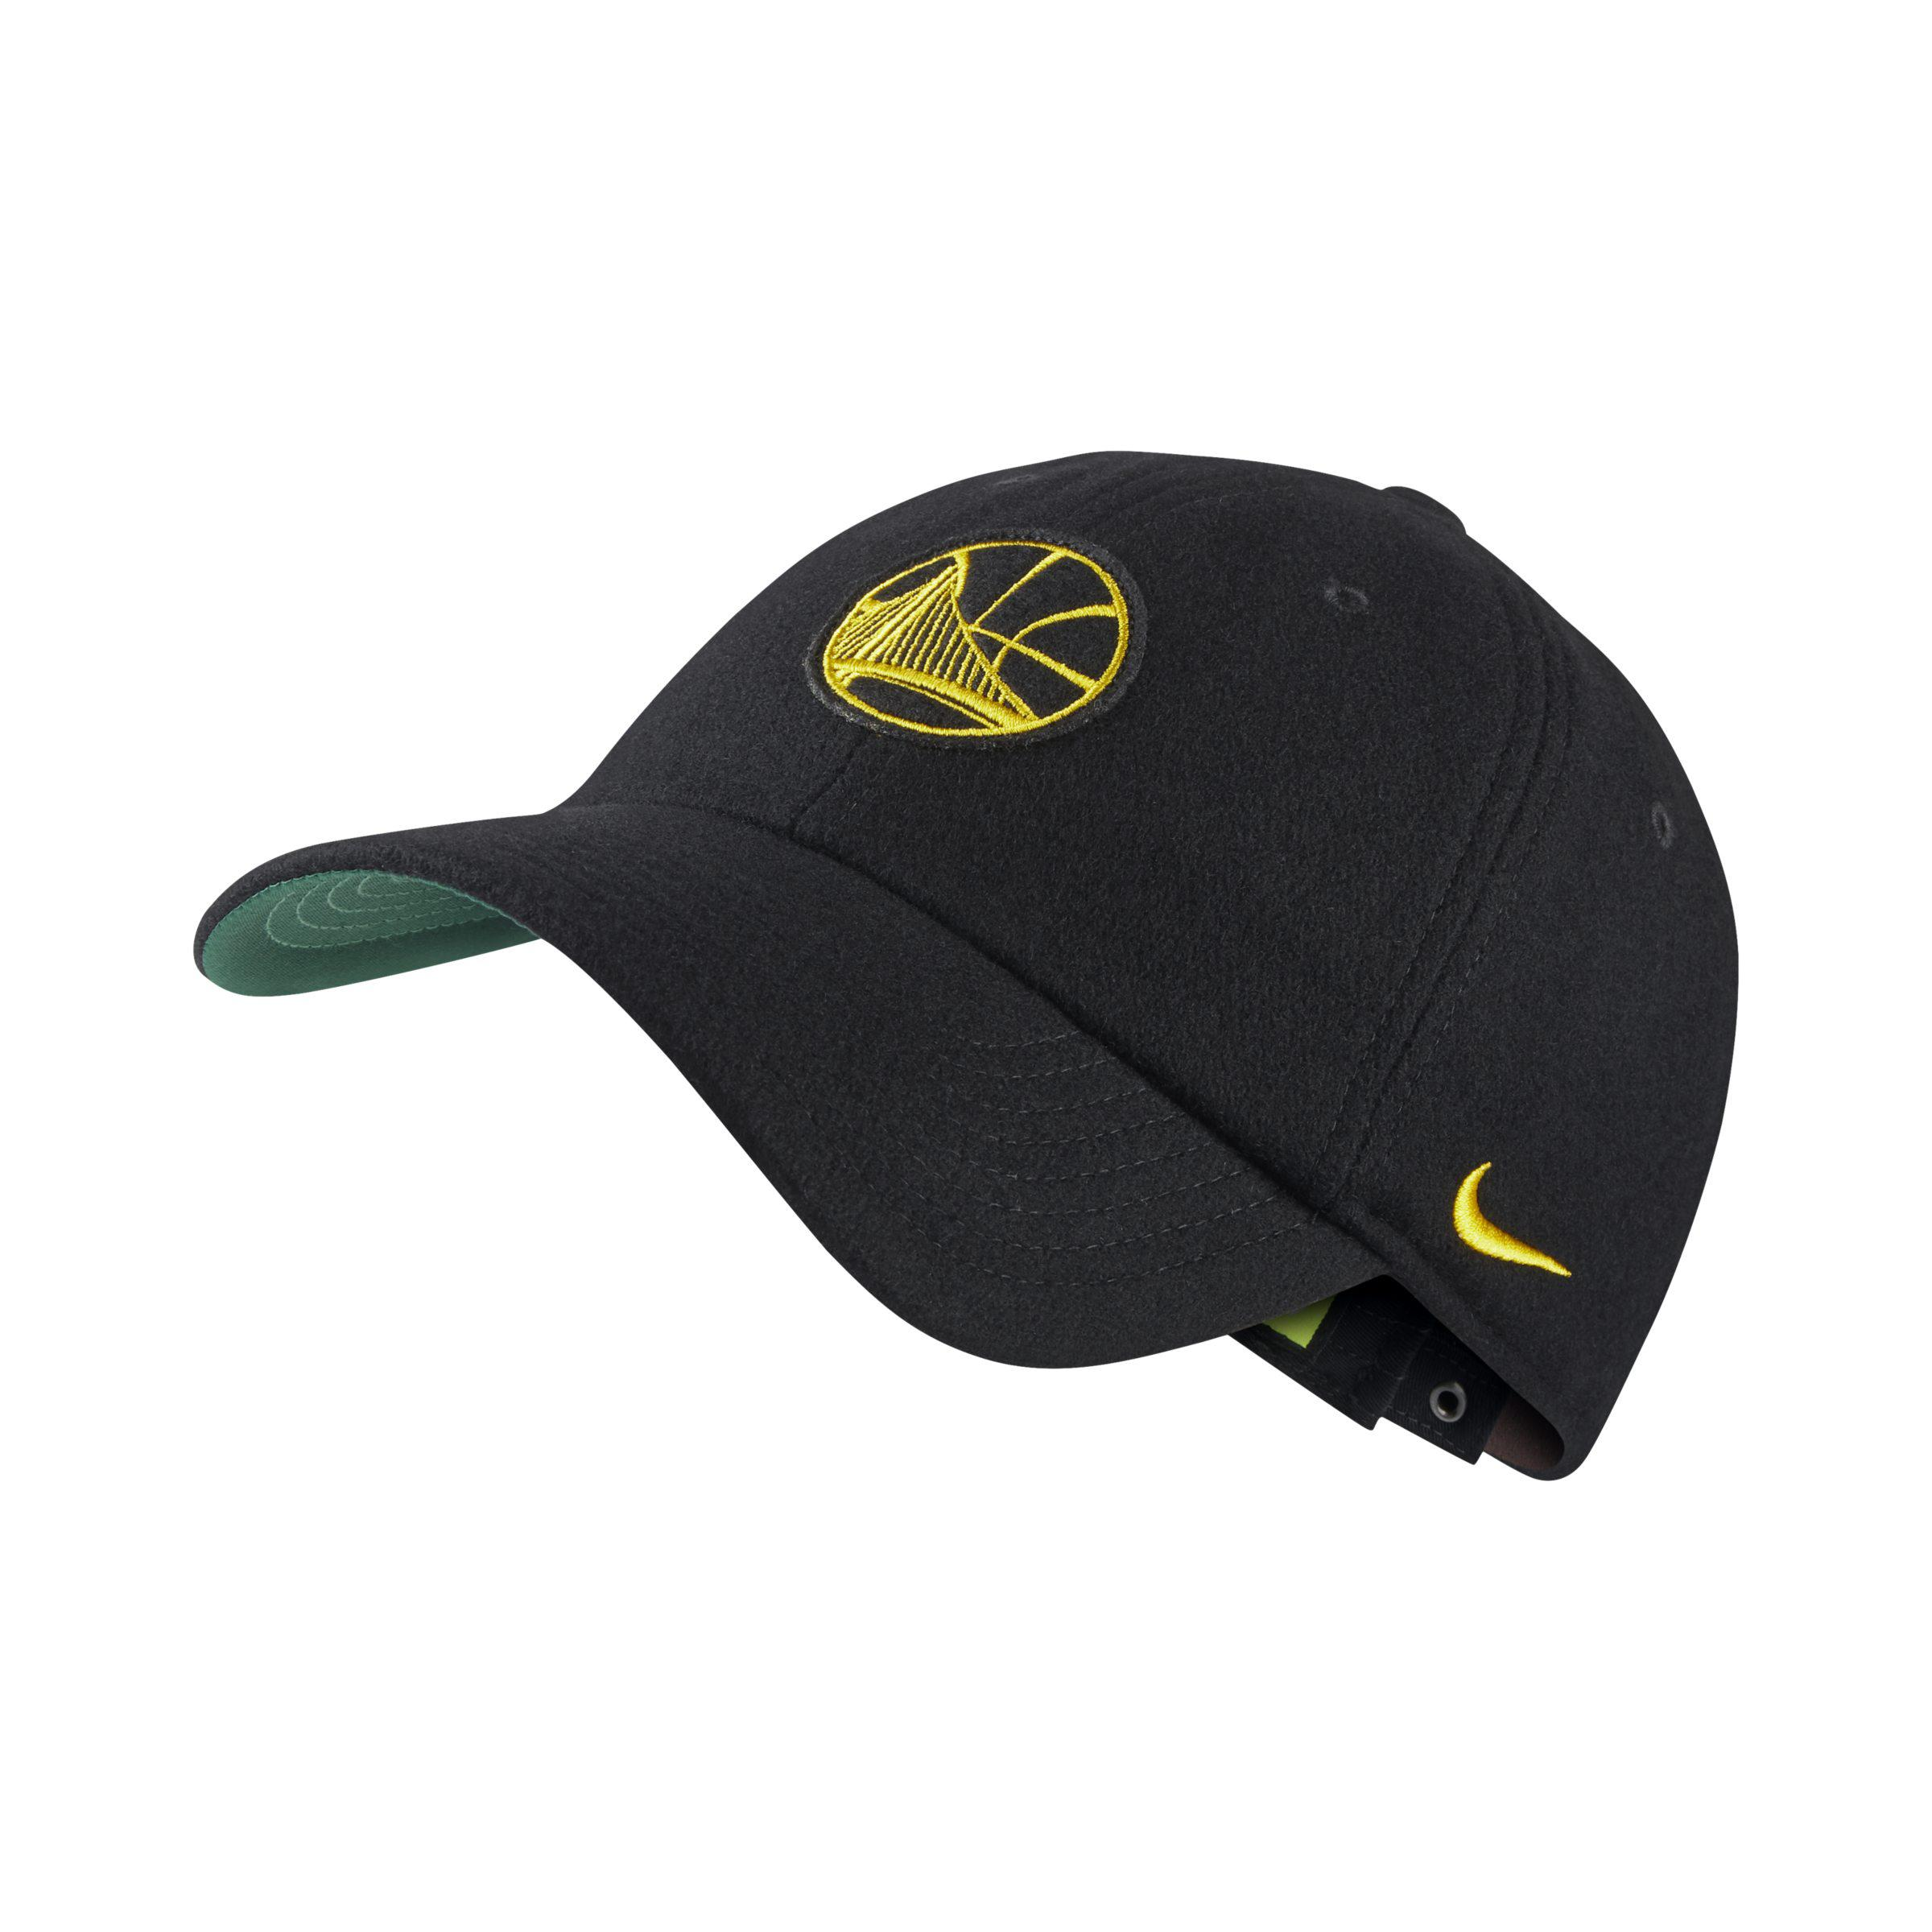 80b9925fa00 Nike Golden State Warriors Heritage86 Unisex Nba Hat in Black - Lyst